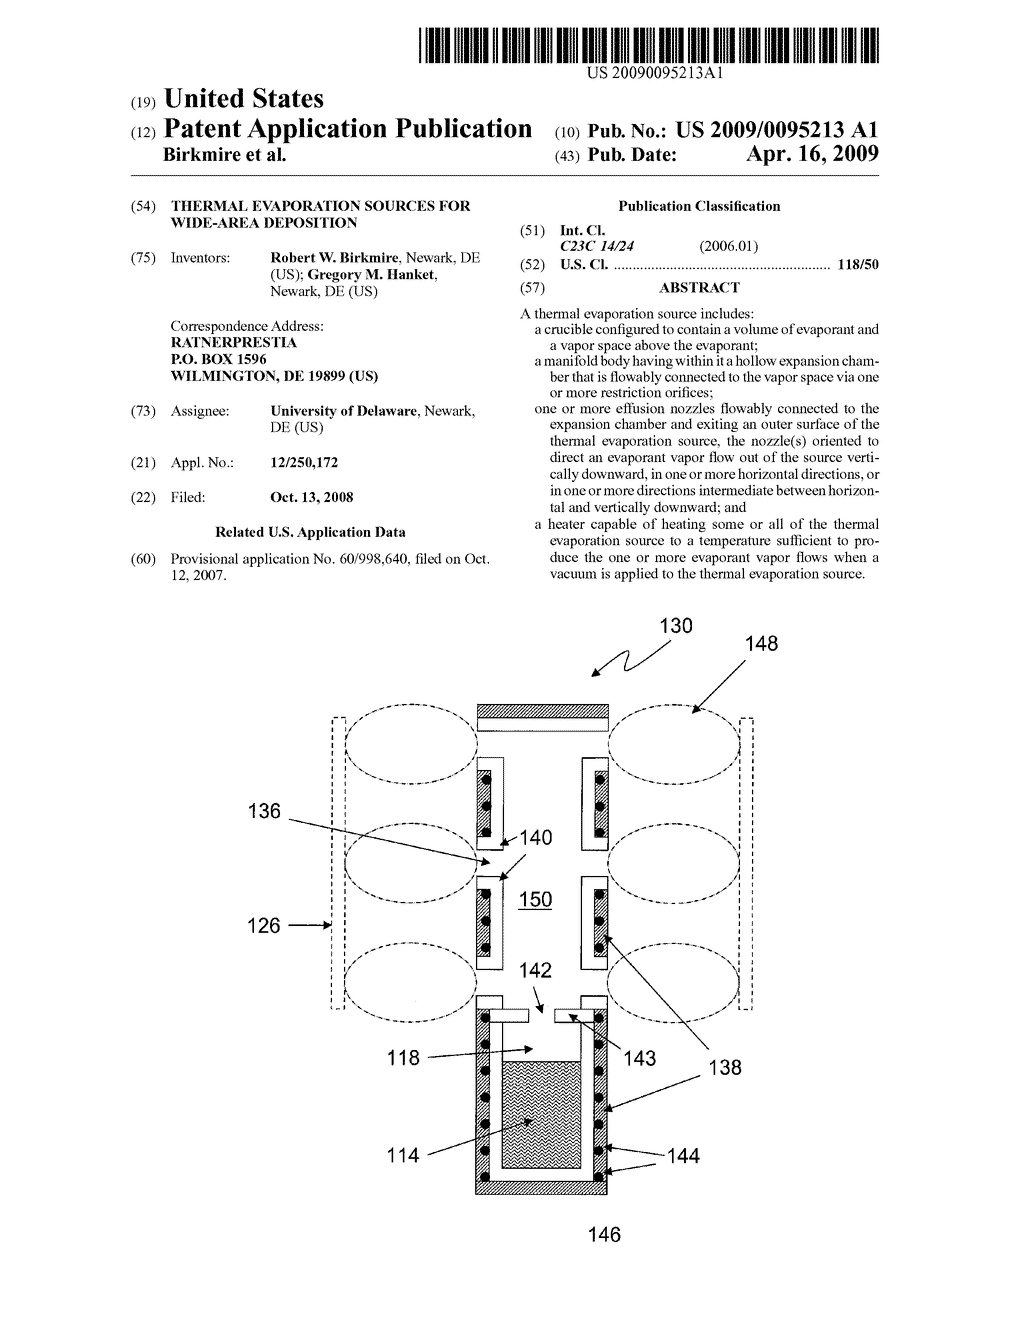 THERMAL EVAPORATION SOURCES FOR WIDE-AREA DEPOSITION - diagram, schematic, and image 01